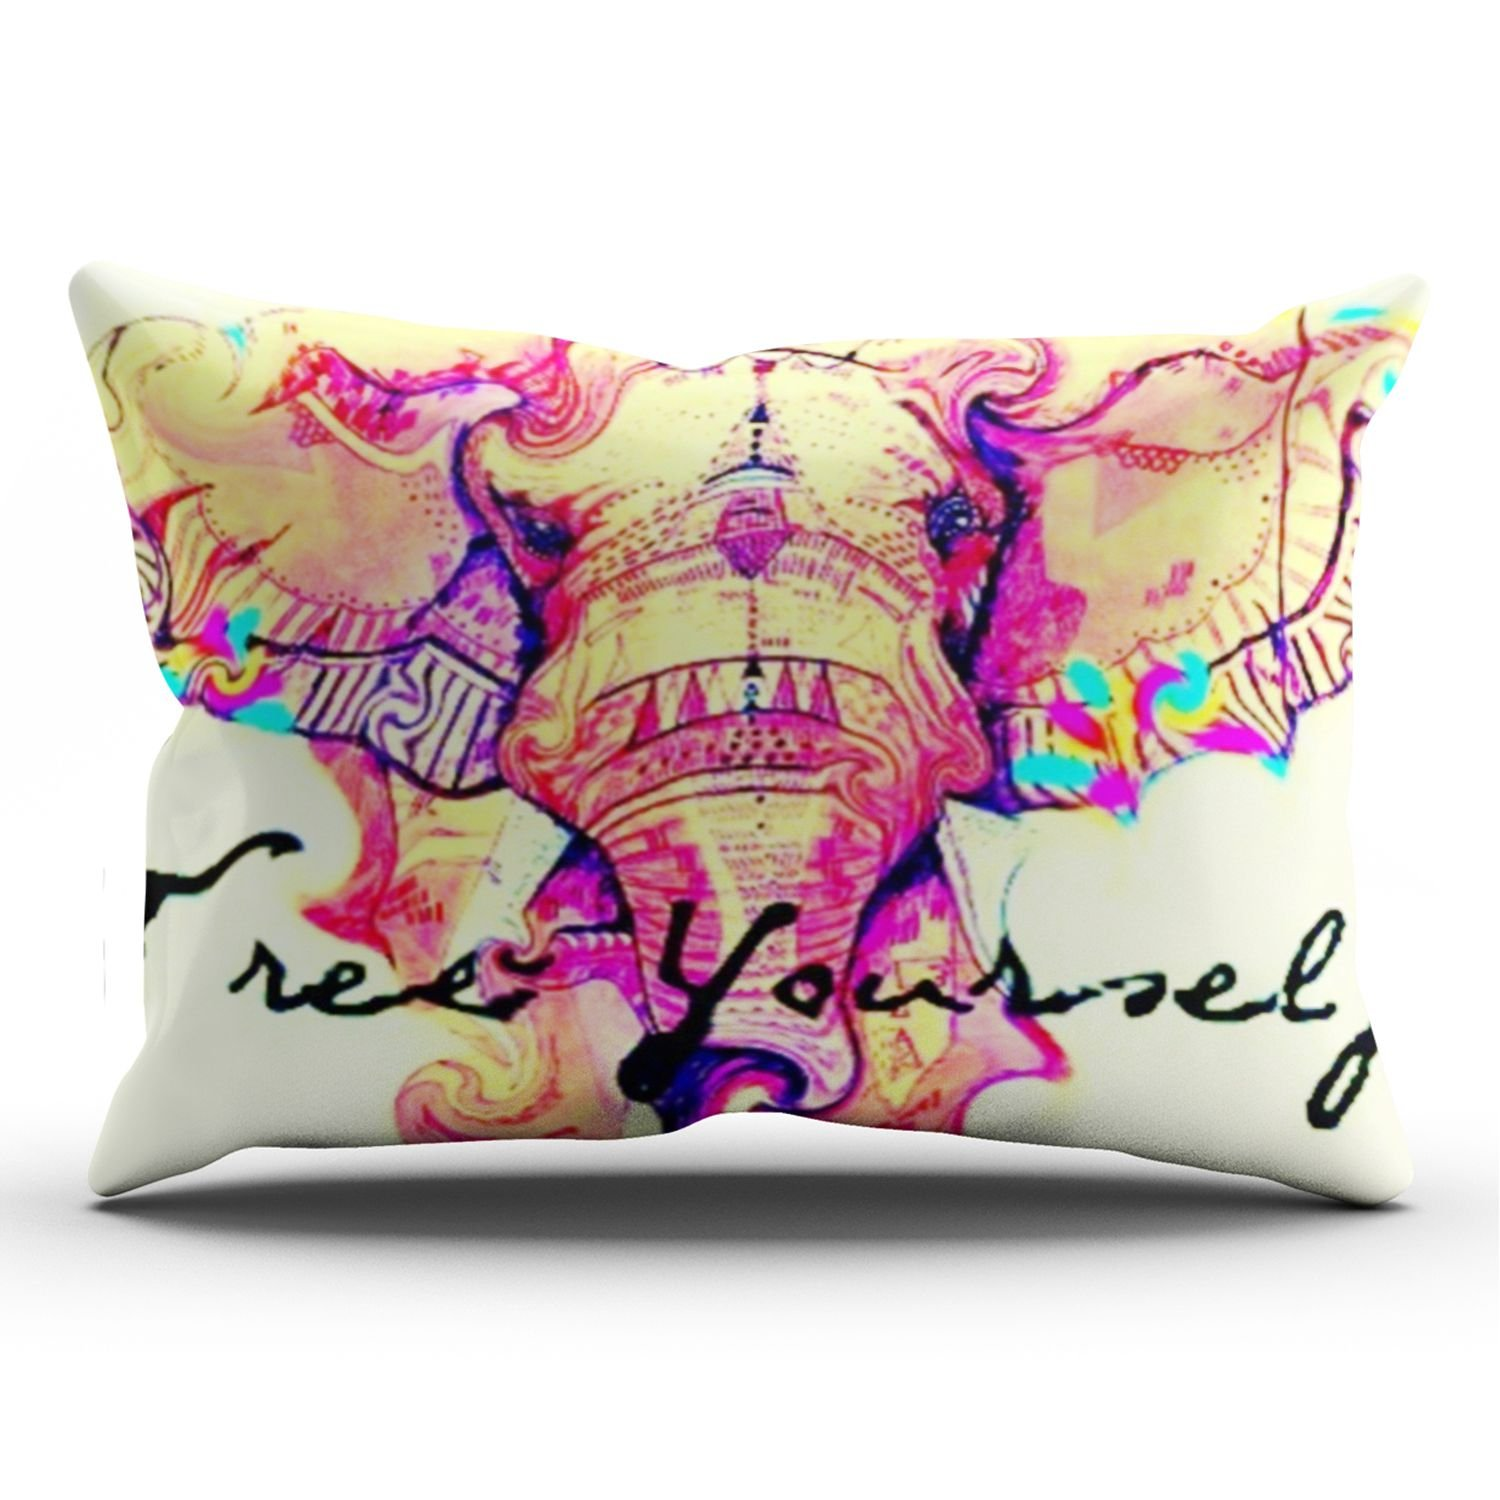 KEIBIKE Personalized Colorful Ink Pink Thai Elephant Rectangle Decorative Pillowcases Retro Zippered King Pillow Covers Cases 20x36 Inches One Sided by KEIBIKE